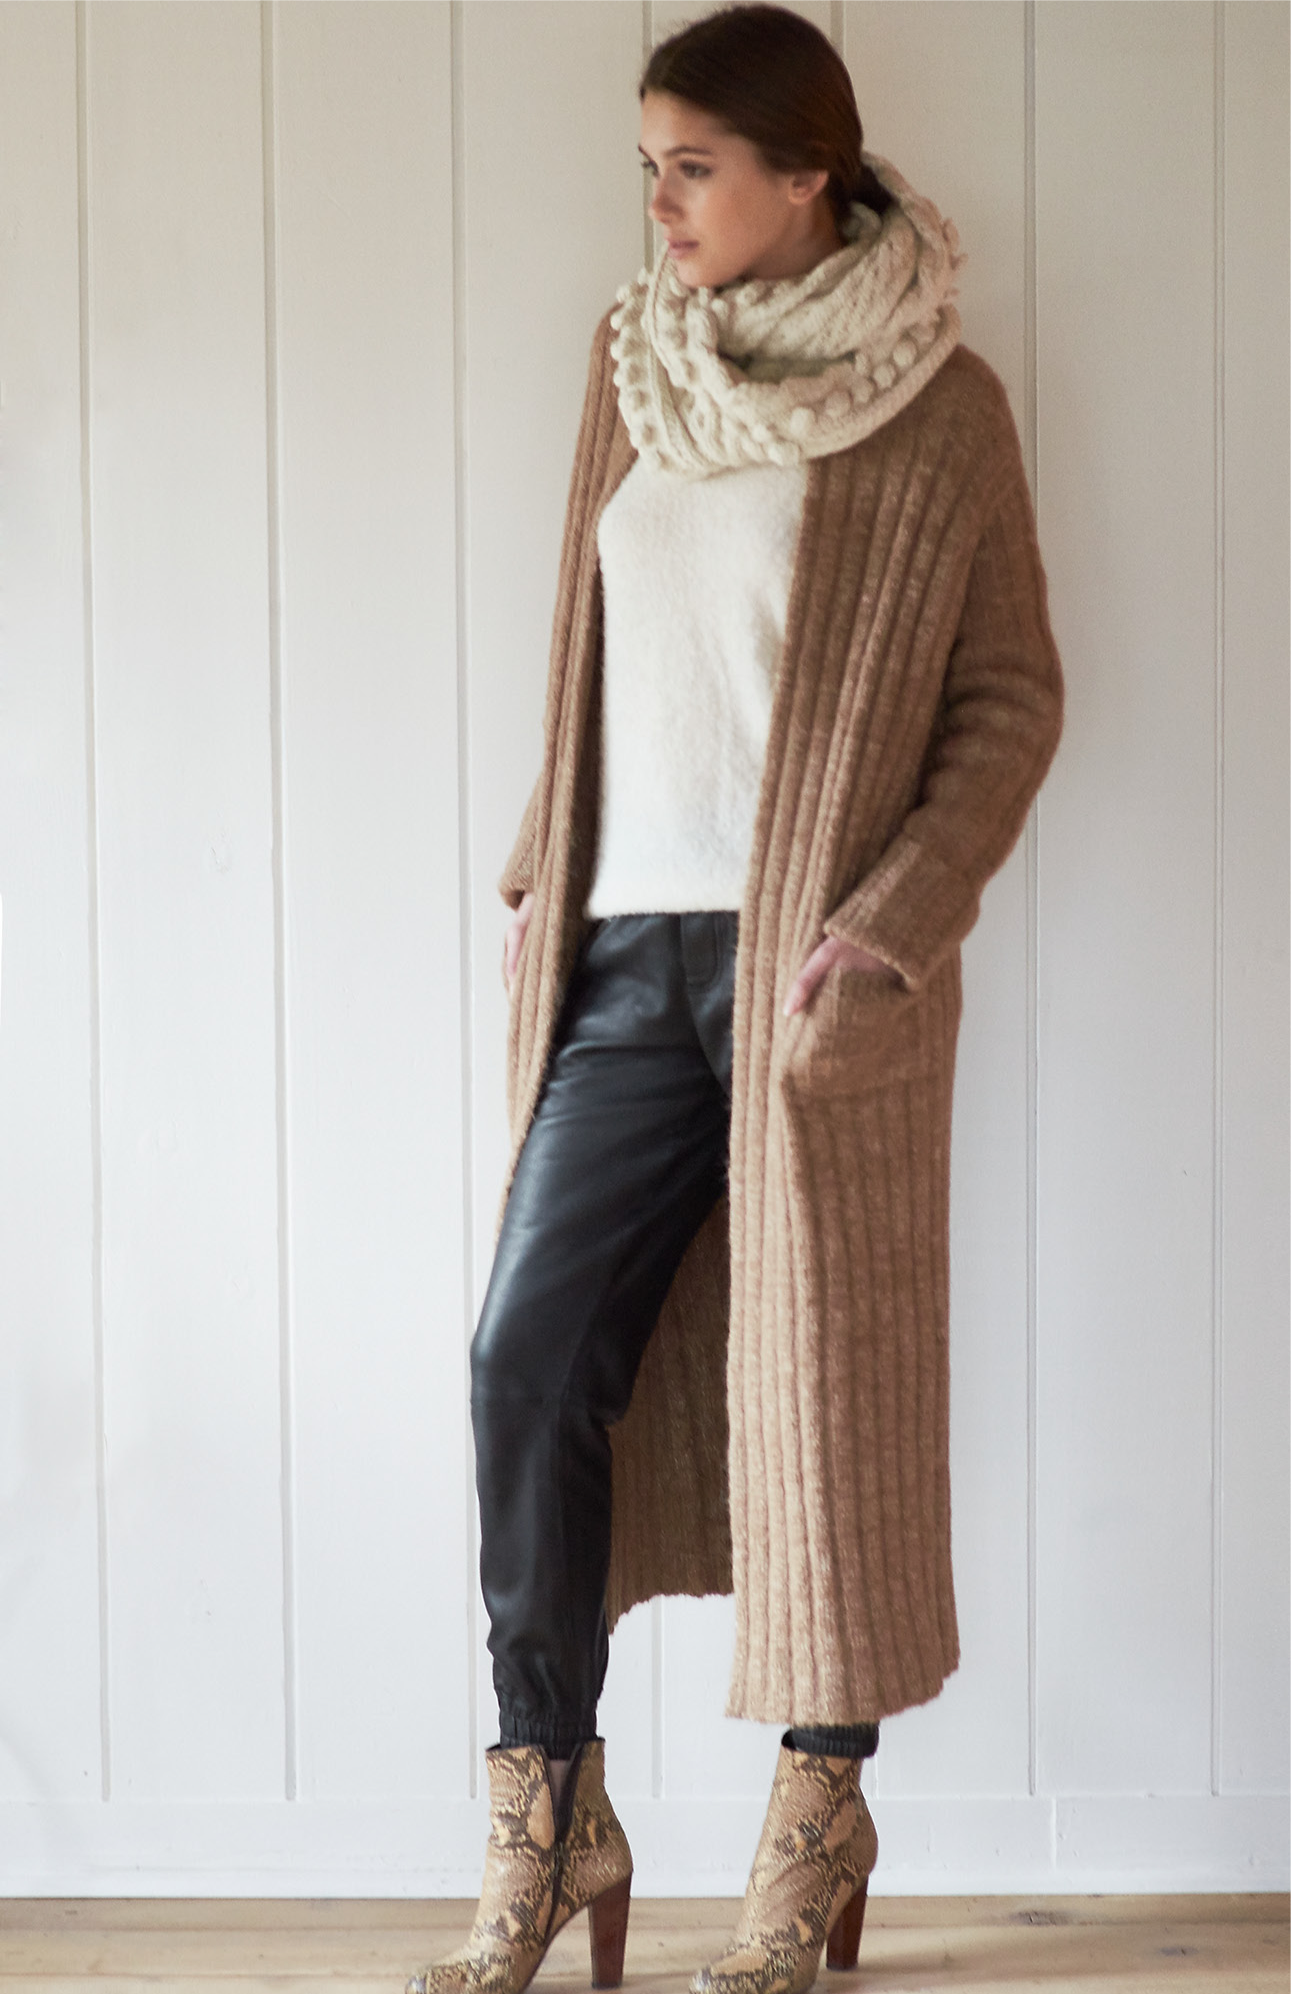 Intended to be worn crossseasonally, the core neutrals allow the Eleven Six woman to compose a wardrobe that allows for just that. A favorite of Catherine's, the essential Lulu Wrap is      making for the perfect everyday companion.  Eleven Six exclusively uses yarn that is natural, sustainable, ecofriendly and ethical.     The Alpaca yarn is developed   to   withstand the cold as well as the equatorial warmth. Very simply, that means that Eleven Six collections span the breadth of all seasons, keeping you warm in the winter and cool in the summer.